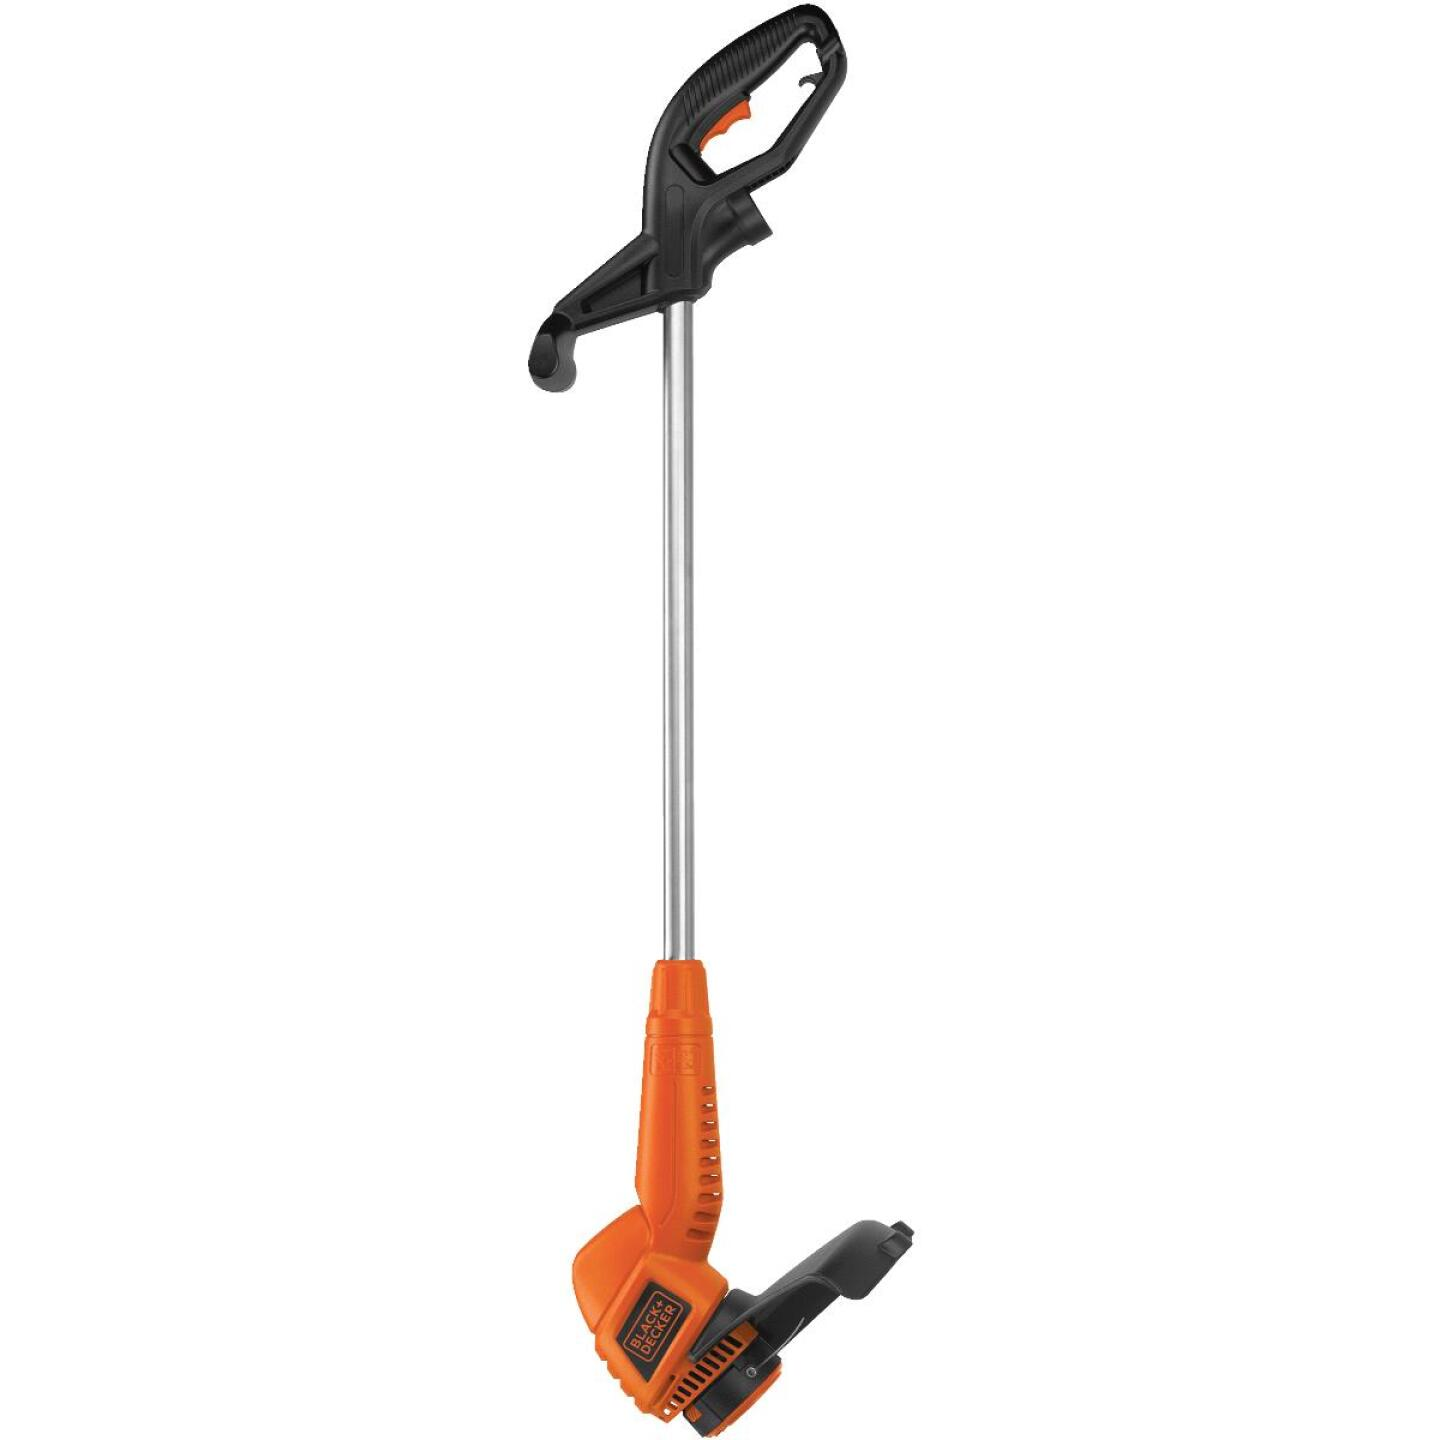 Black & Decker 13 In. 4.4-Amp Straight Shaft Corded Electric String Trimmer Edger Image 2